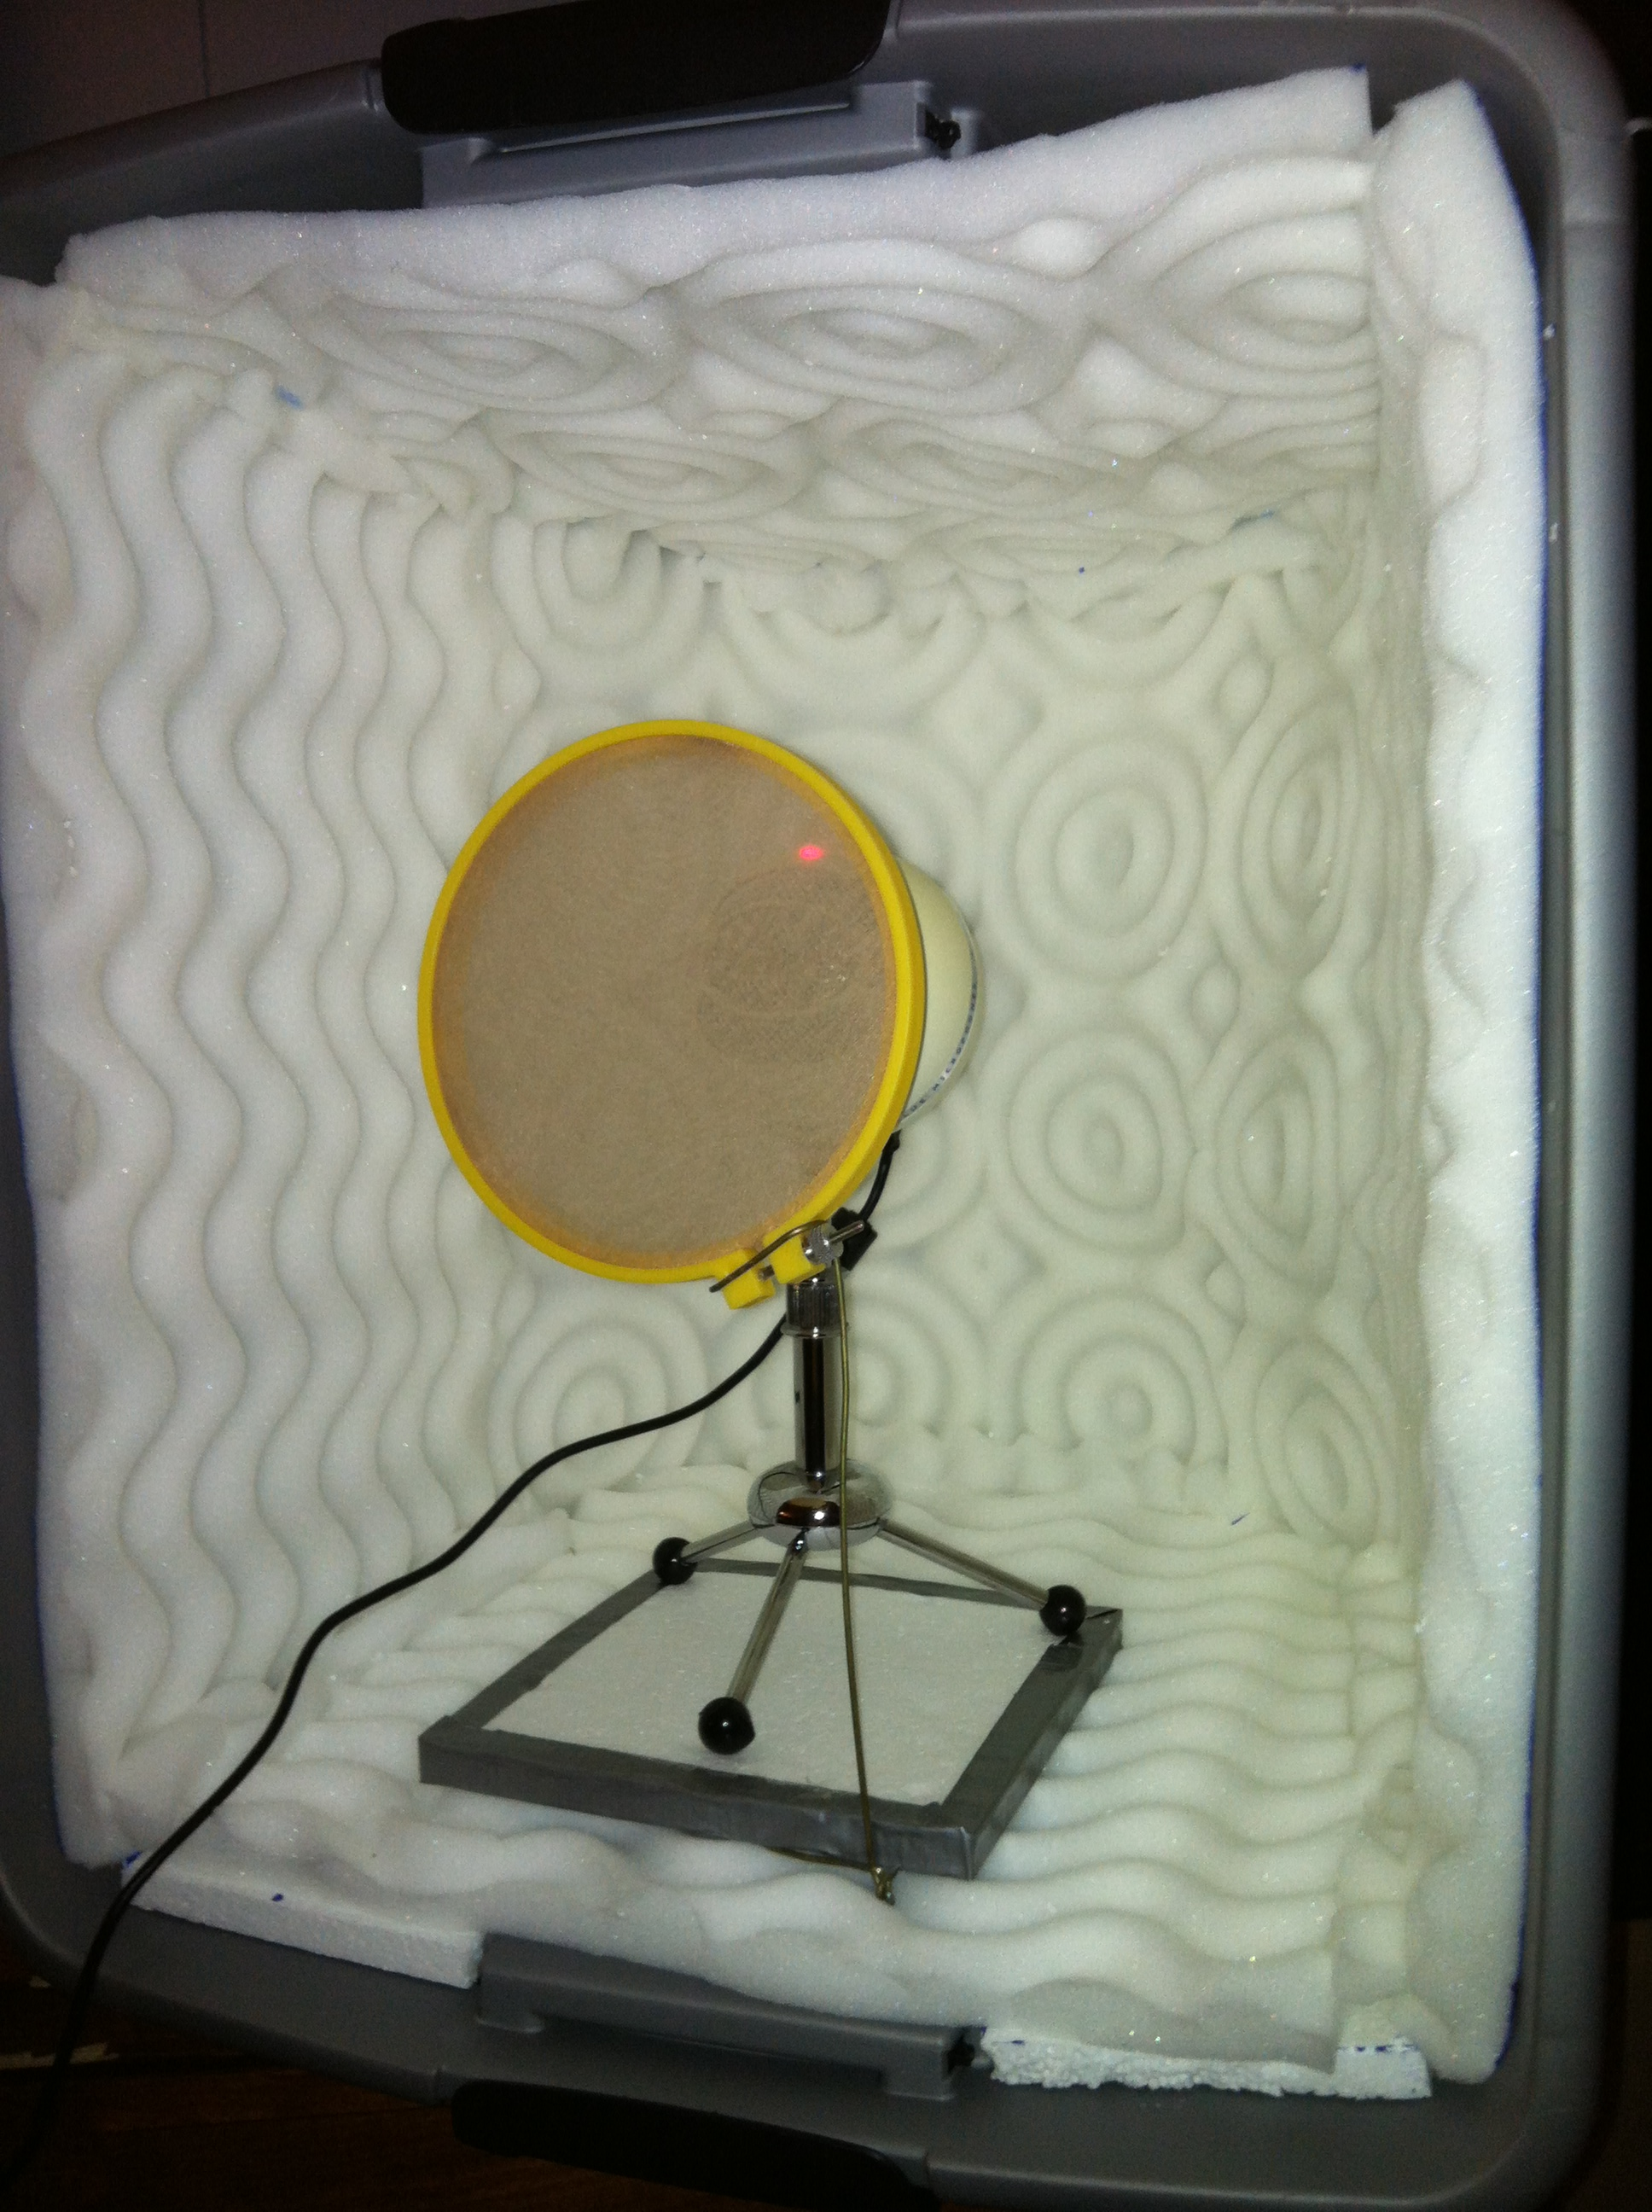 Make A Desktop Sound Booth For 25 Nspired2 Learning